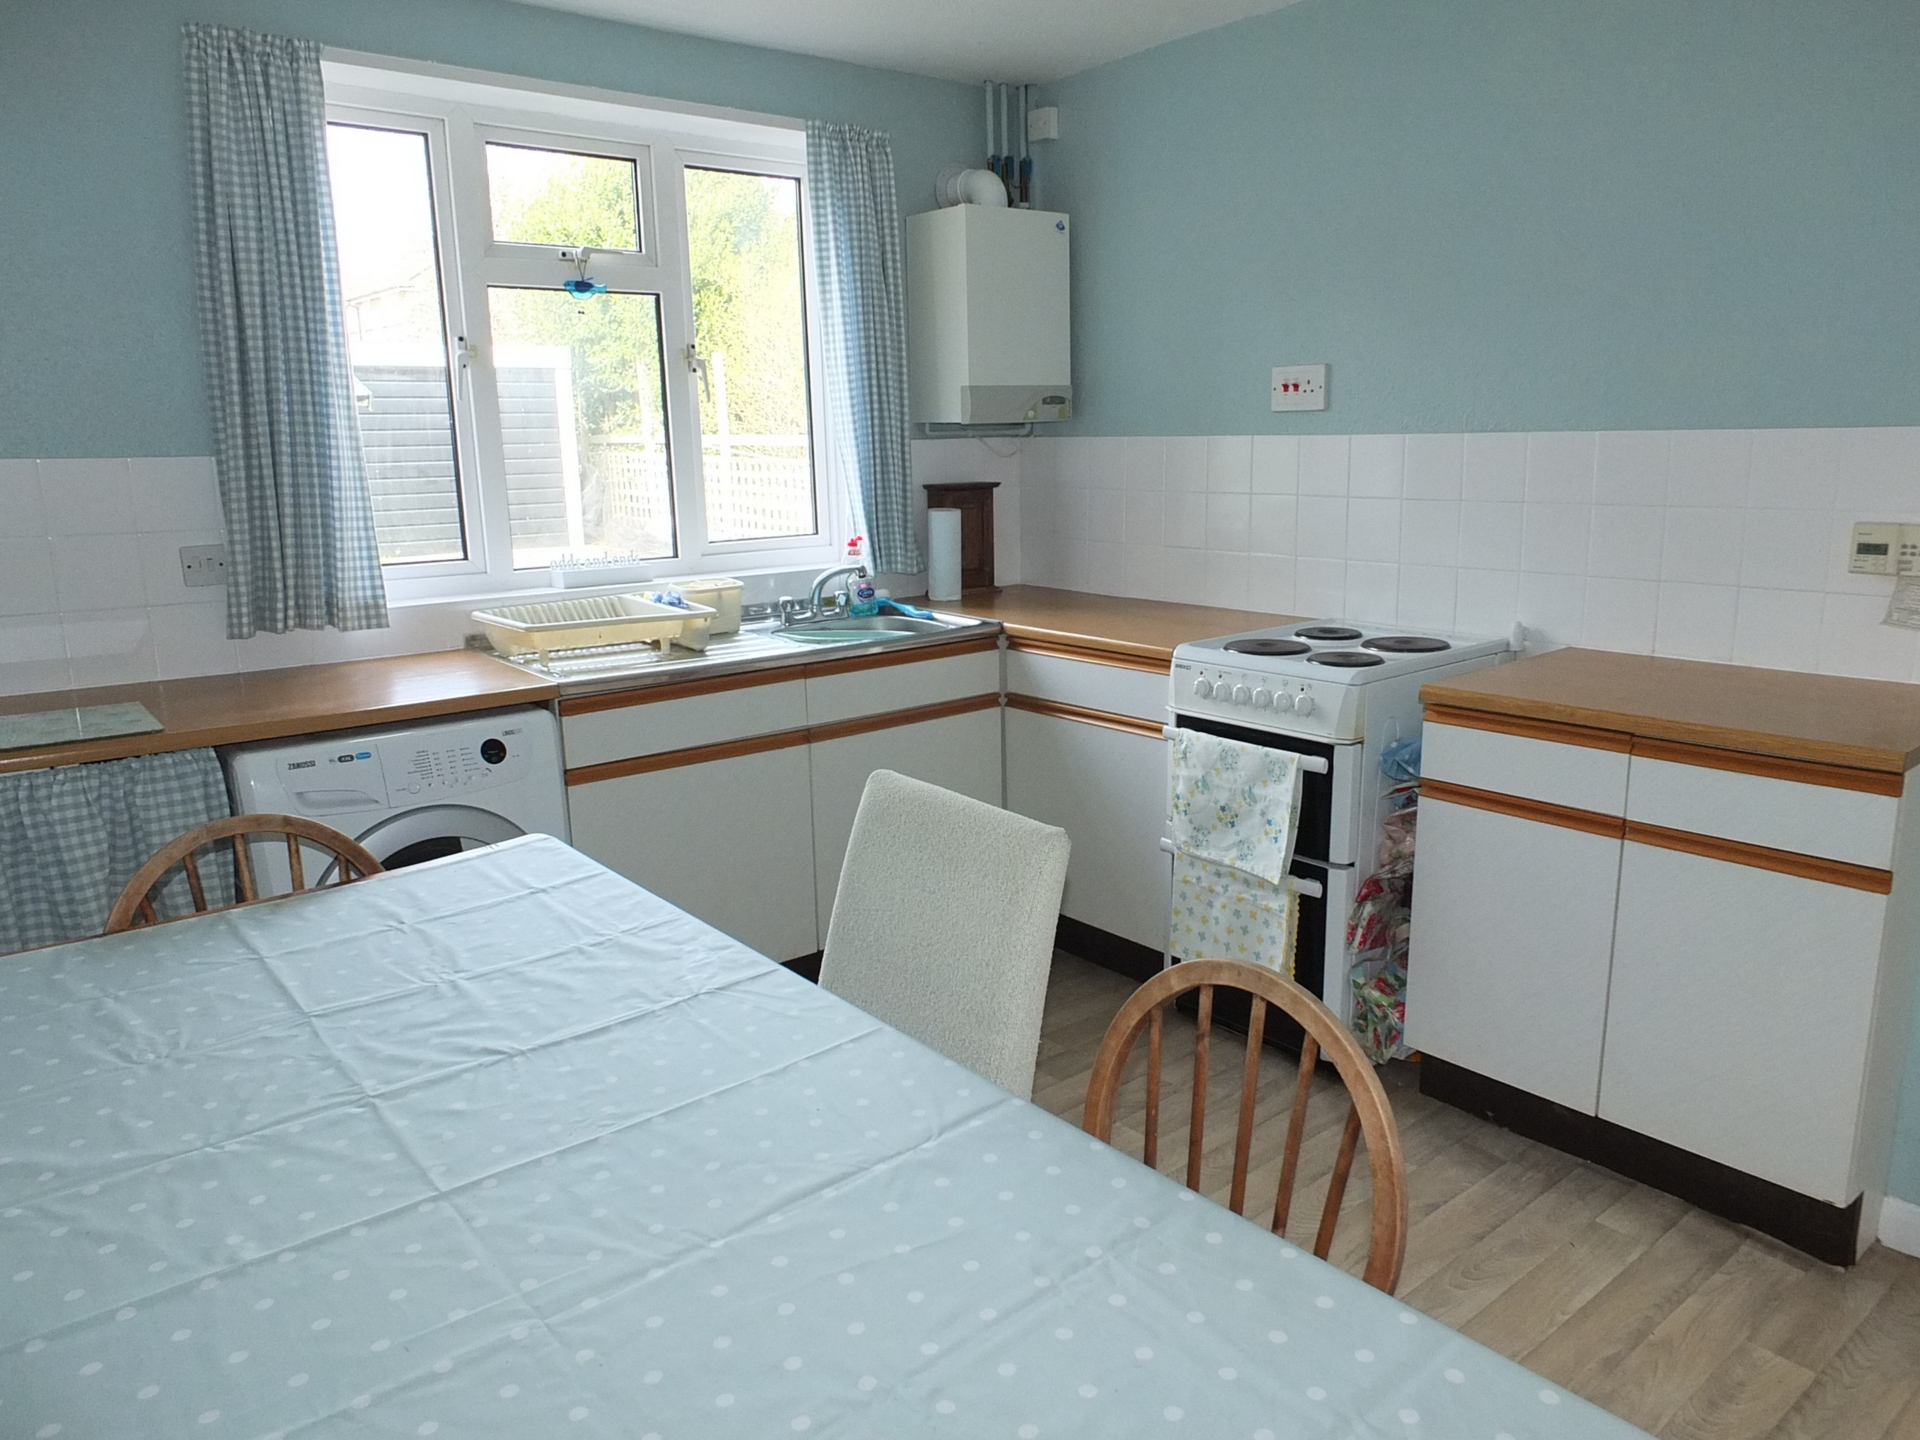 Property for sale Luxford Road,Lindfield,RH16 | 2 Bedroom House Semi ...